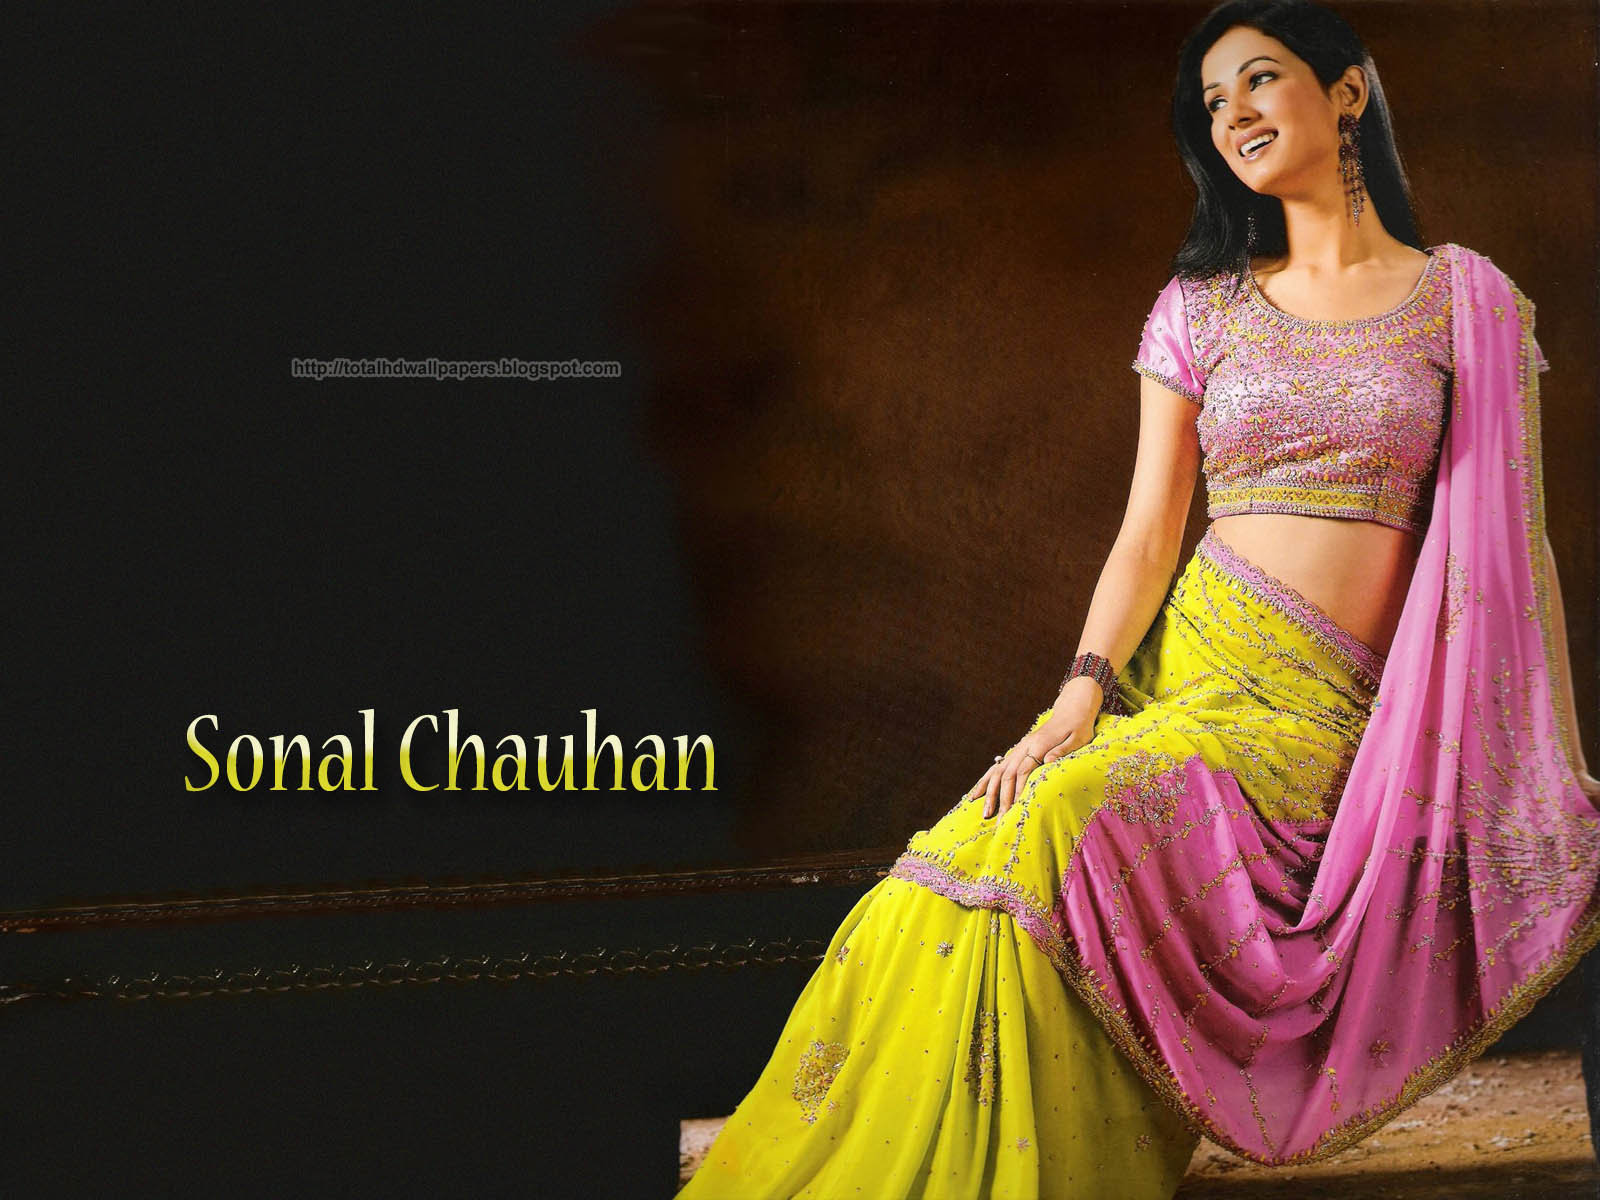 wallpapers hd : sonal chauhan hd wallpapers